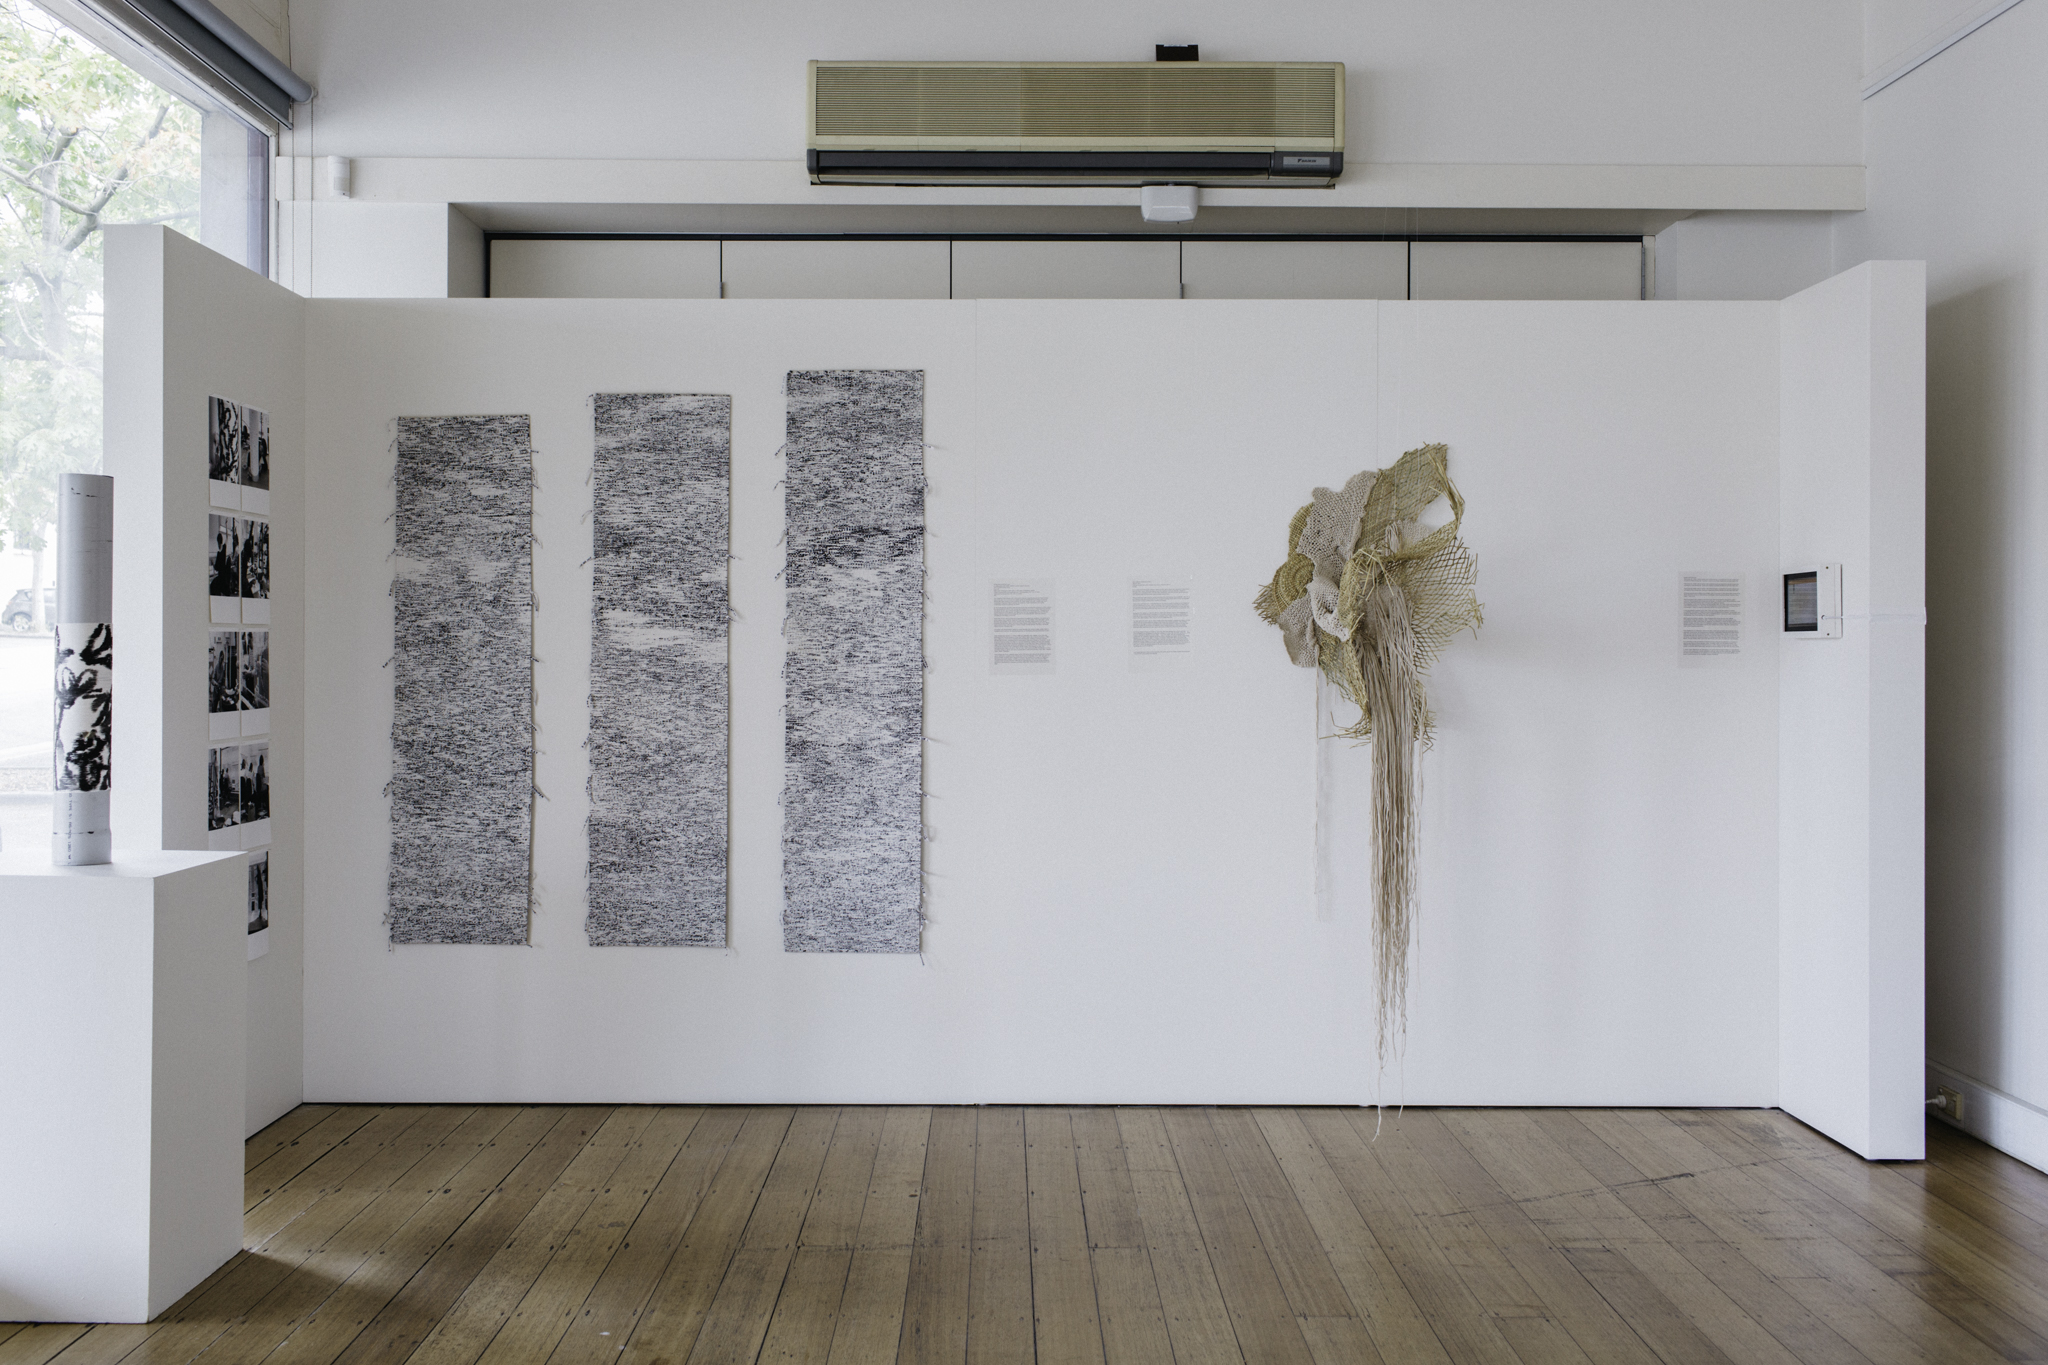 AIR19 Artist in Residence 2019 Exhibition. Photo by Marie-Luise Skibbe.